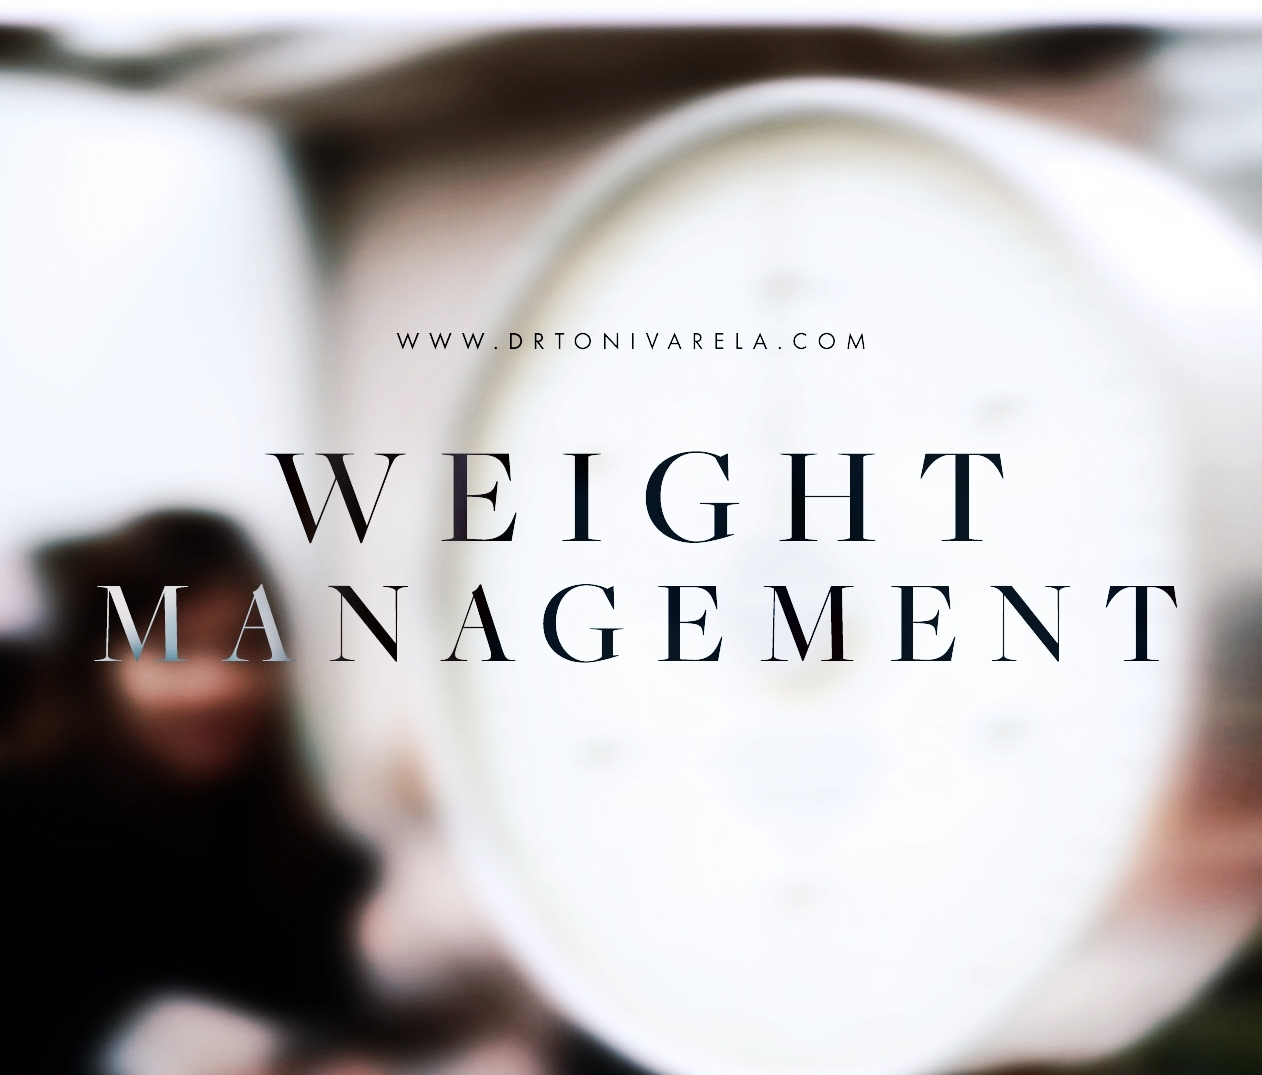 WEIGHT MANAGEMENT & HCG - Weight gain results from complex relationships between the body's systems and the environment, no single eating program or weight loss method can work for everyone. Dr. Varela takes a multifaceted, scientific approach to weight management. After examining carefully all of the potential underlying issues that can influence a person's weight, Dr. Varela then develops an individually tailored approach that corrects the imbalances that lead to weight gain. With or without the aforementioned HCG hormone therapy, the goal is long-term wellness, incorporating healthy eating and exercise plans.Human chorionic gonadotropin (hCG), a hormone produced during pregnancy, is a popular weight lossaid for both men and women. Administered via injections or sublingual drops, it is accompanied by a very restrictive diet (500–800 calories per day, no fat, no sugar, ultra-low carbohydrate), which can be a real challenge for some people. That said, proponents—including thousands of successful dieters—claim hCG helps reduce hunger pangs, mobilizes stubborn fatty deposits, and prevents the breakdown of muscle for energy. Ultimately, hCG diet works well and is a good fit for some, but not for others. If you want to try it, Dr. Varela is an experienced physician to administer the treatment and monitor your health and progress.